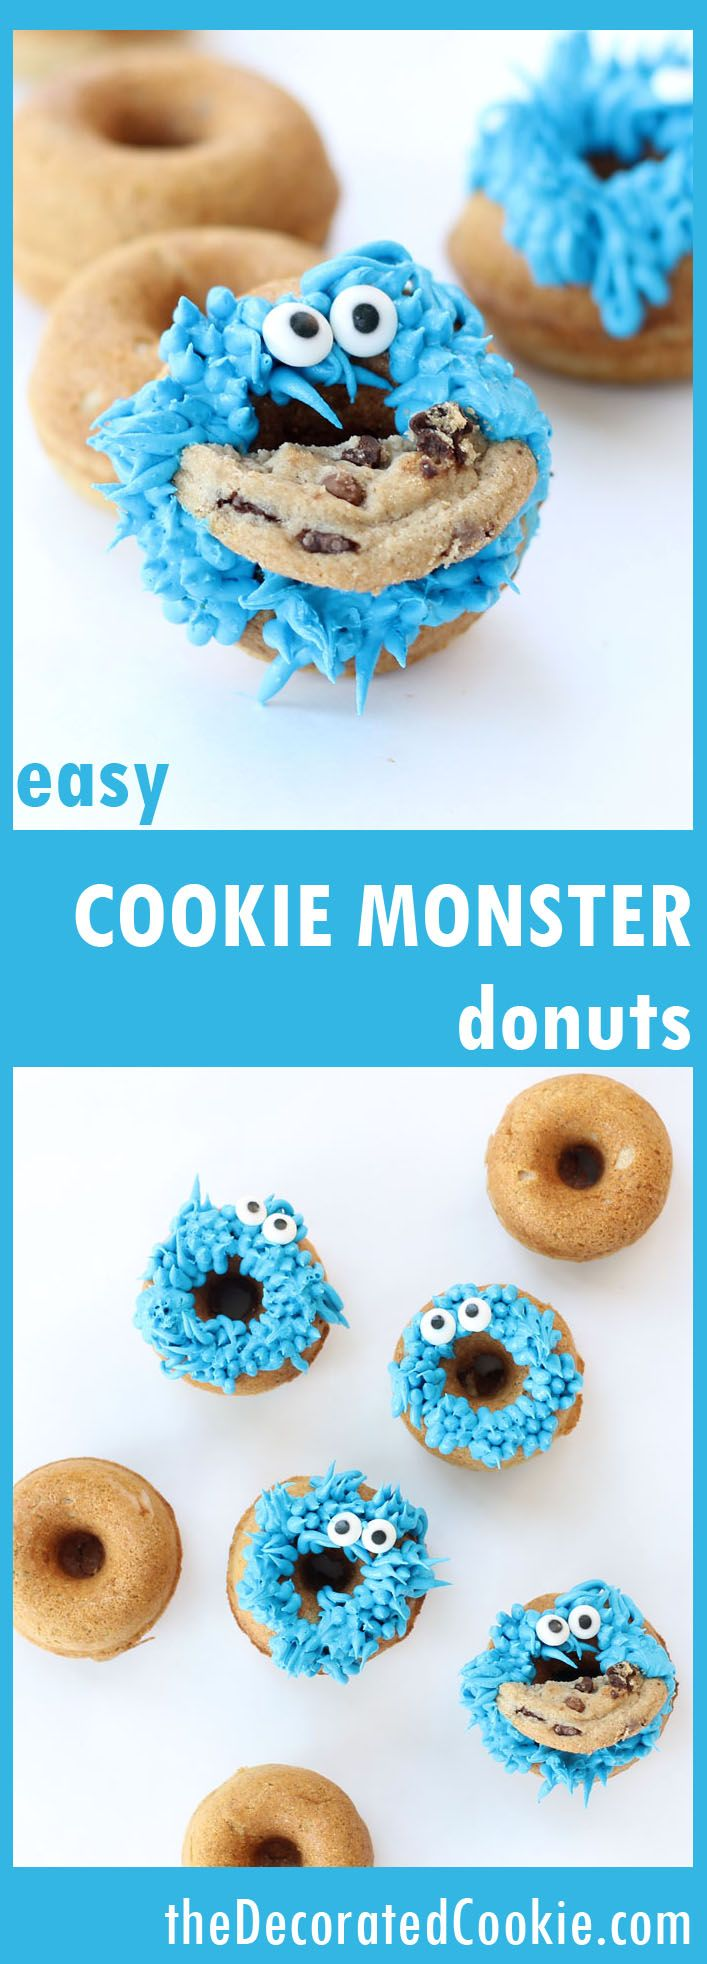 EASY recipe for Cookie Monster donuts (doughnuts?)